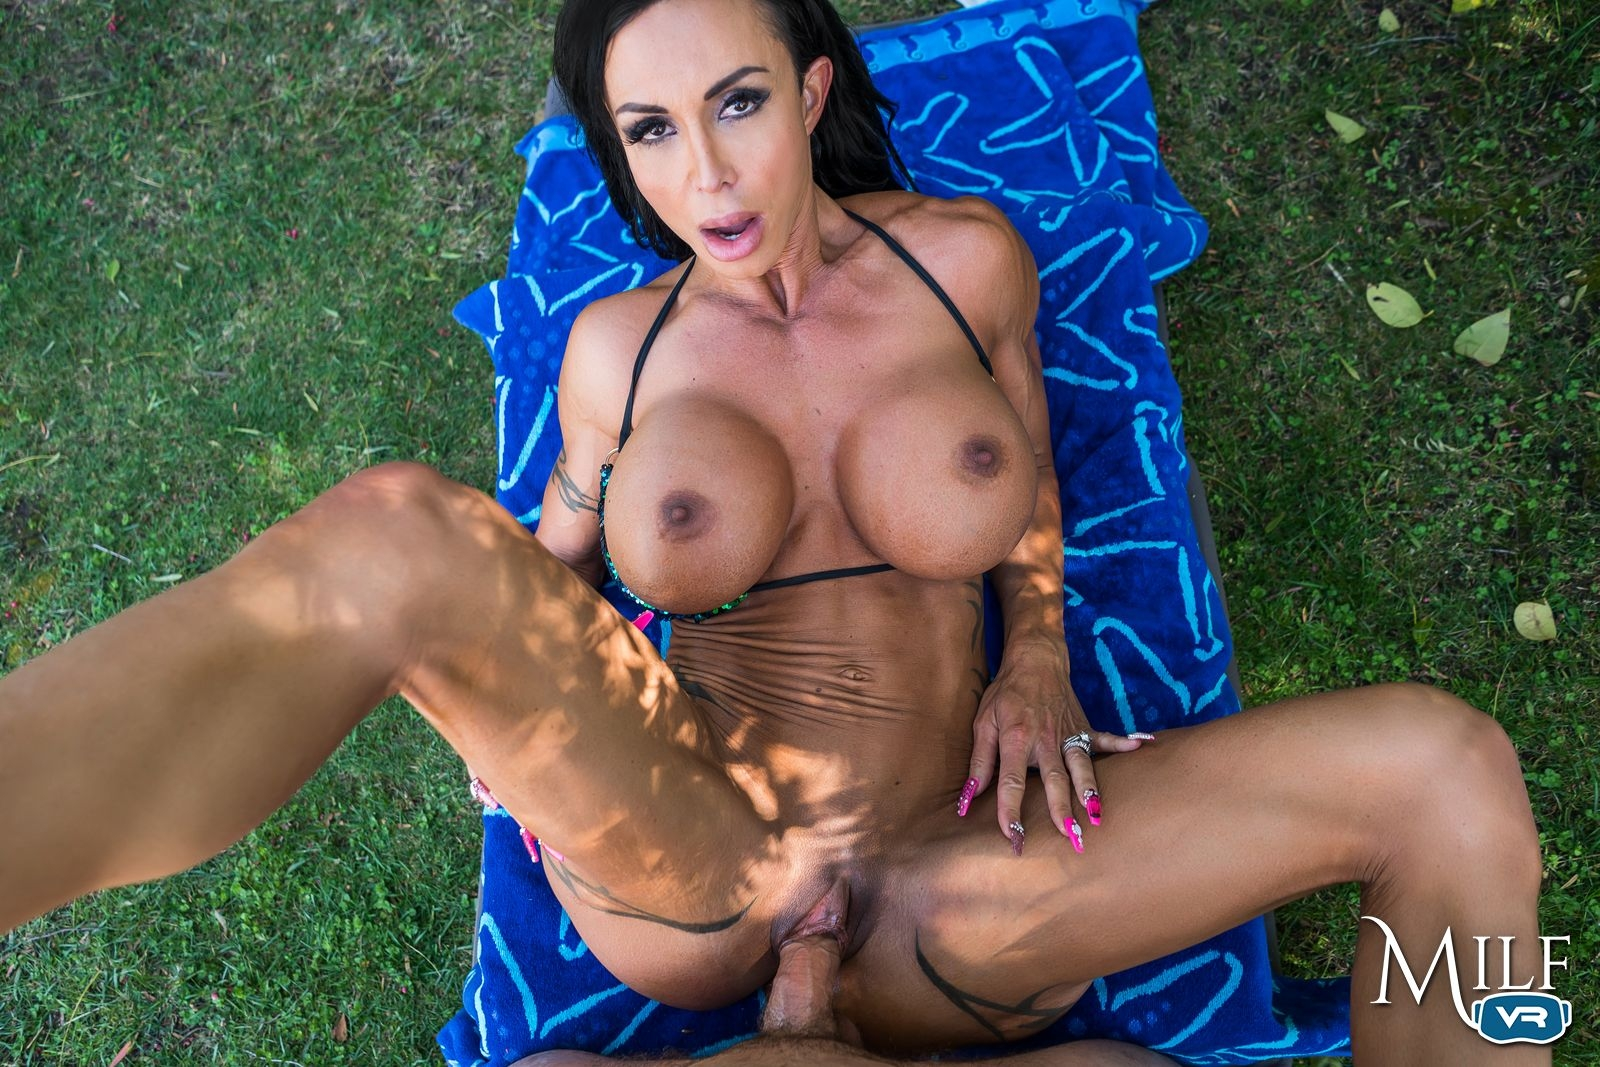 Winter jade licks the incredible milfs delicious pussy